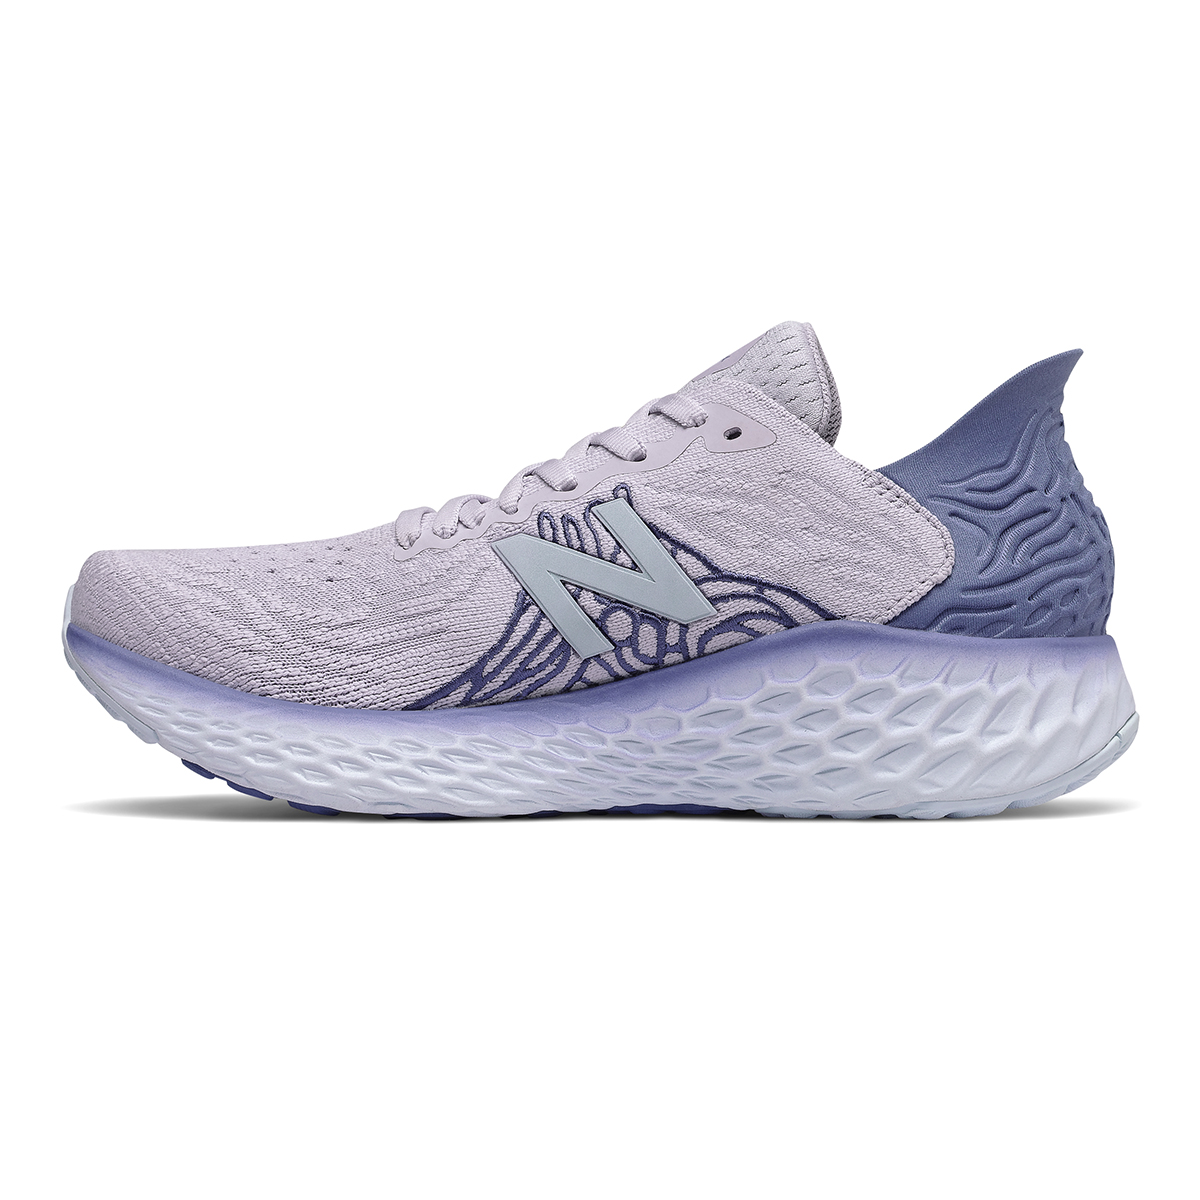 Women's New Balance Fresh Foam 1080v10 Running Shoe - Color: Thistle - Size: 5.5 - Width: Narrow, Thistle, large, image 2